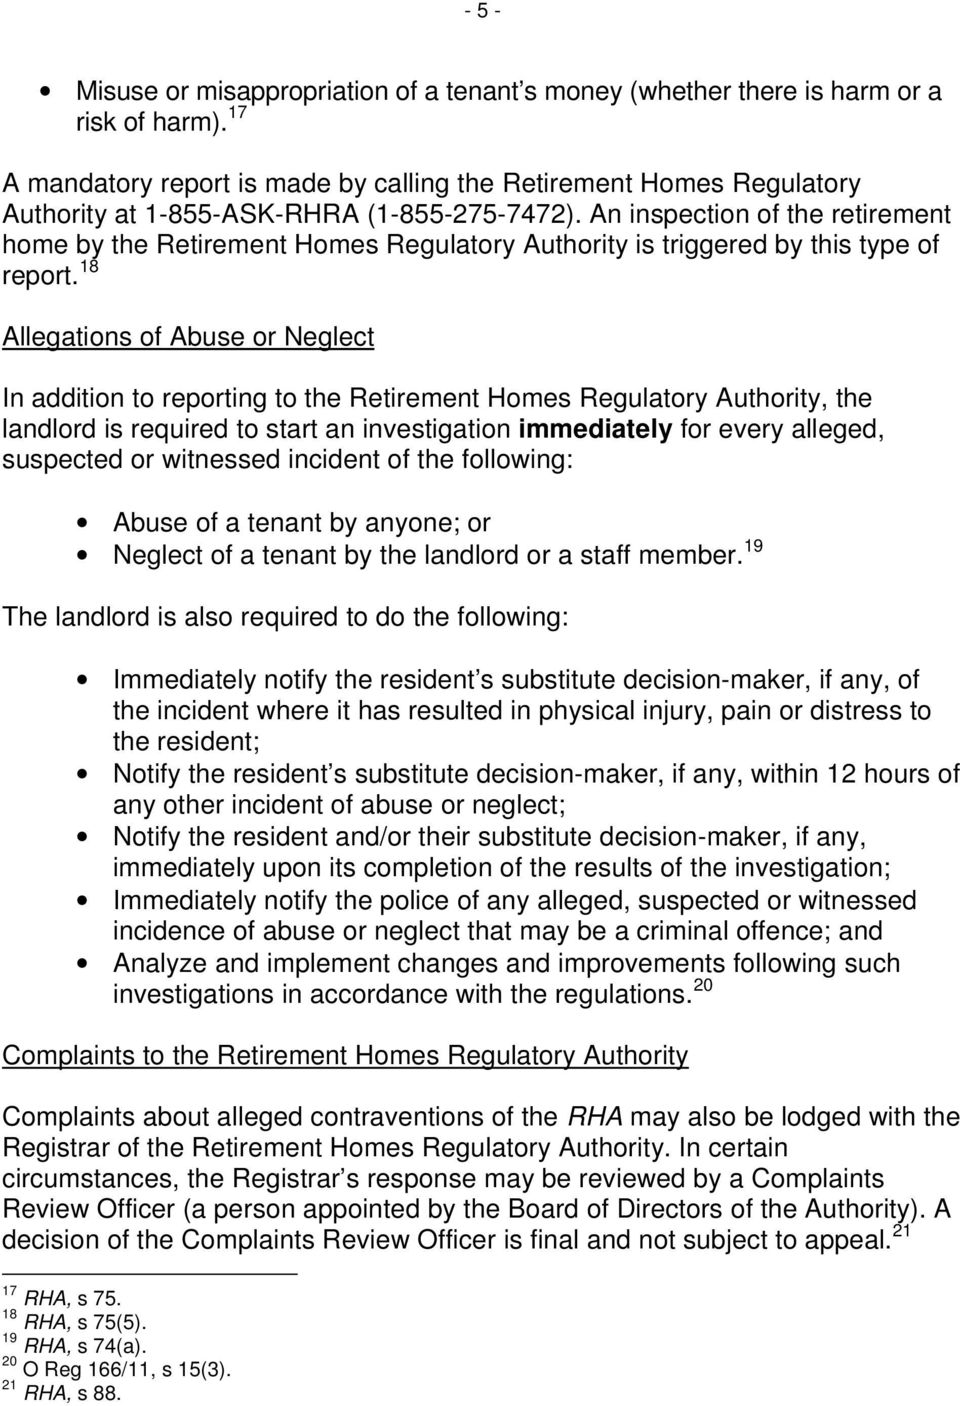 An inspection of the retirement home by the Retirement Homes Regulatory Authority is triggered by this type of report.